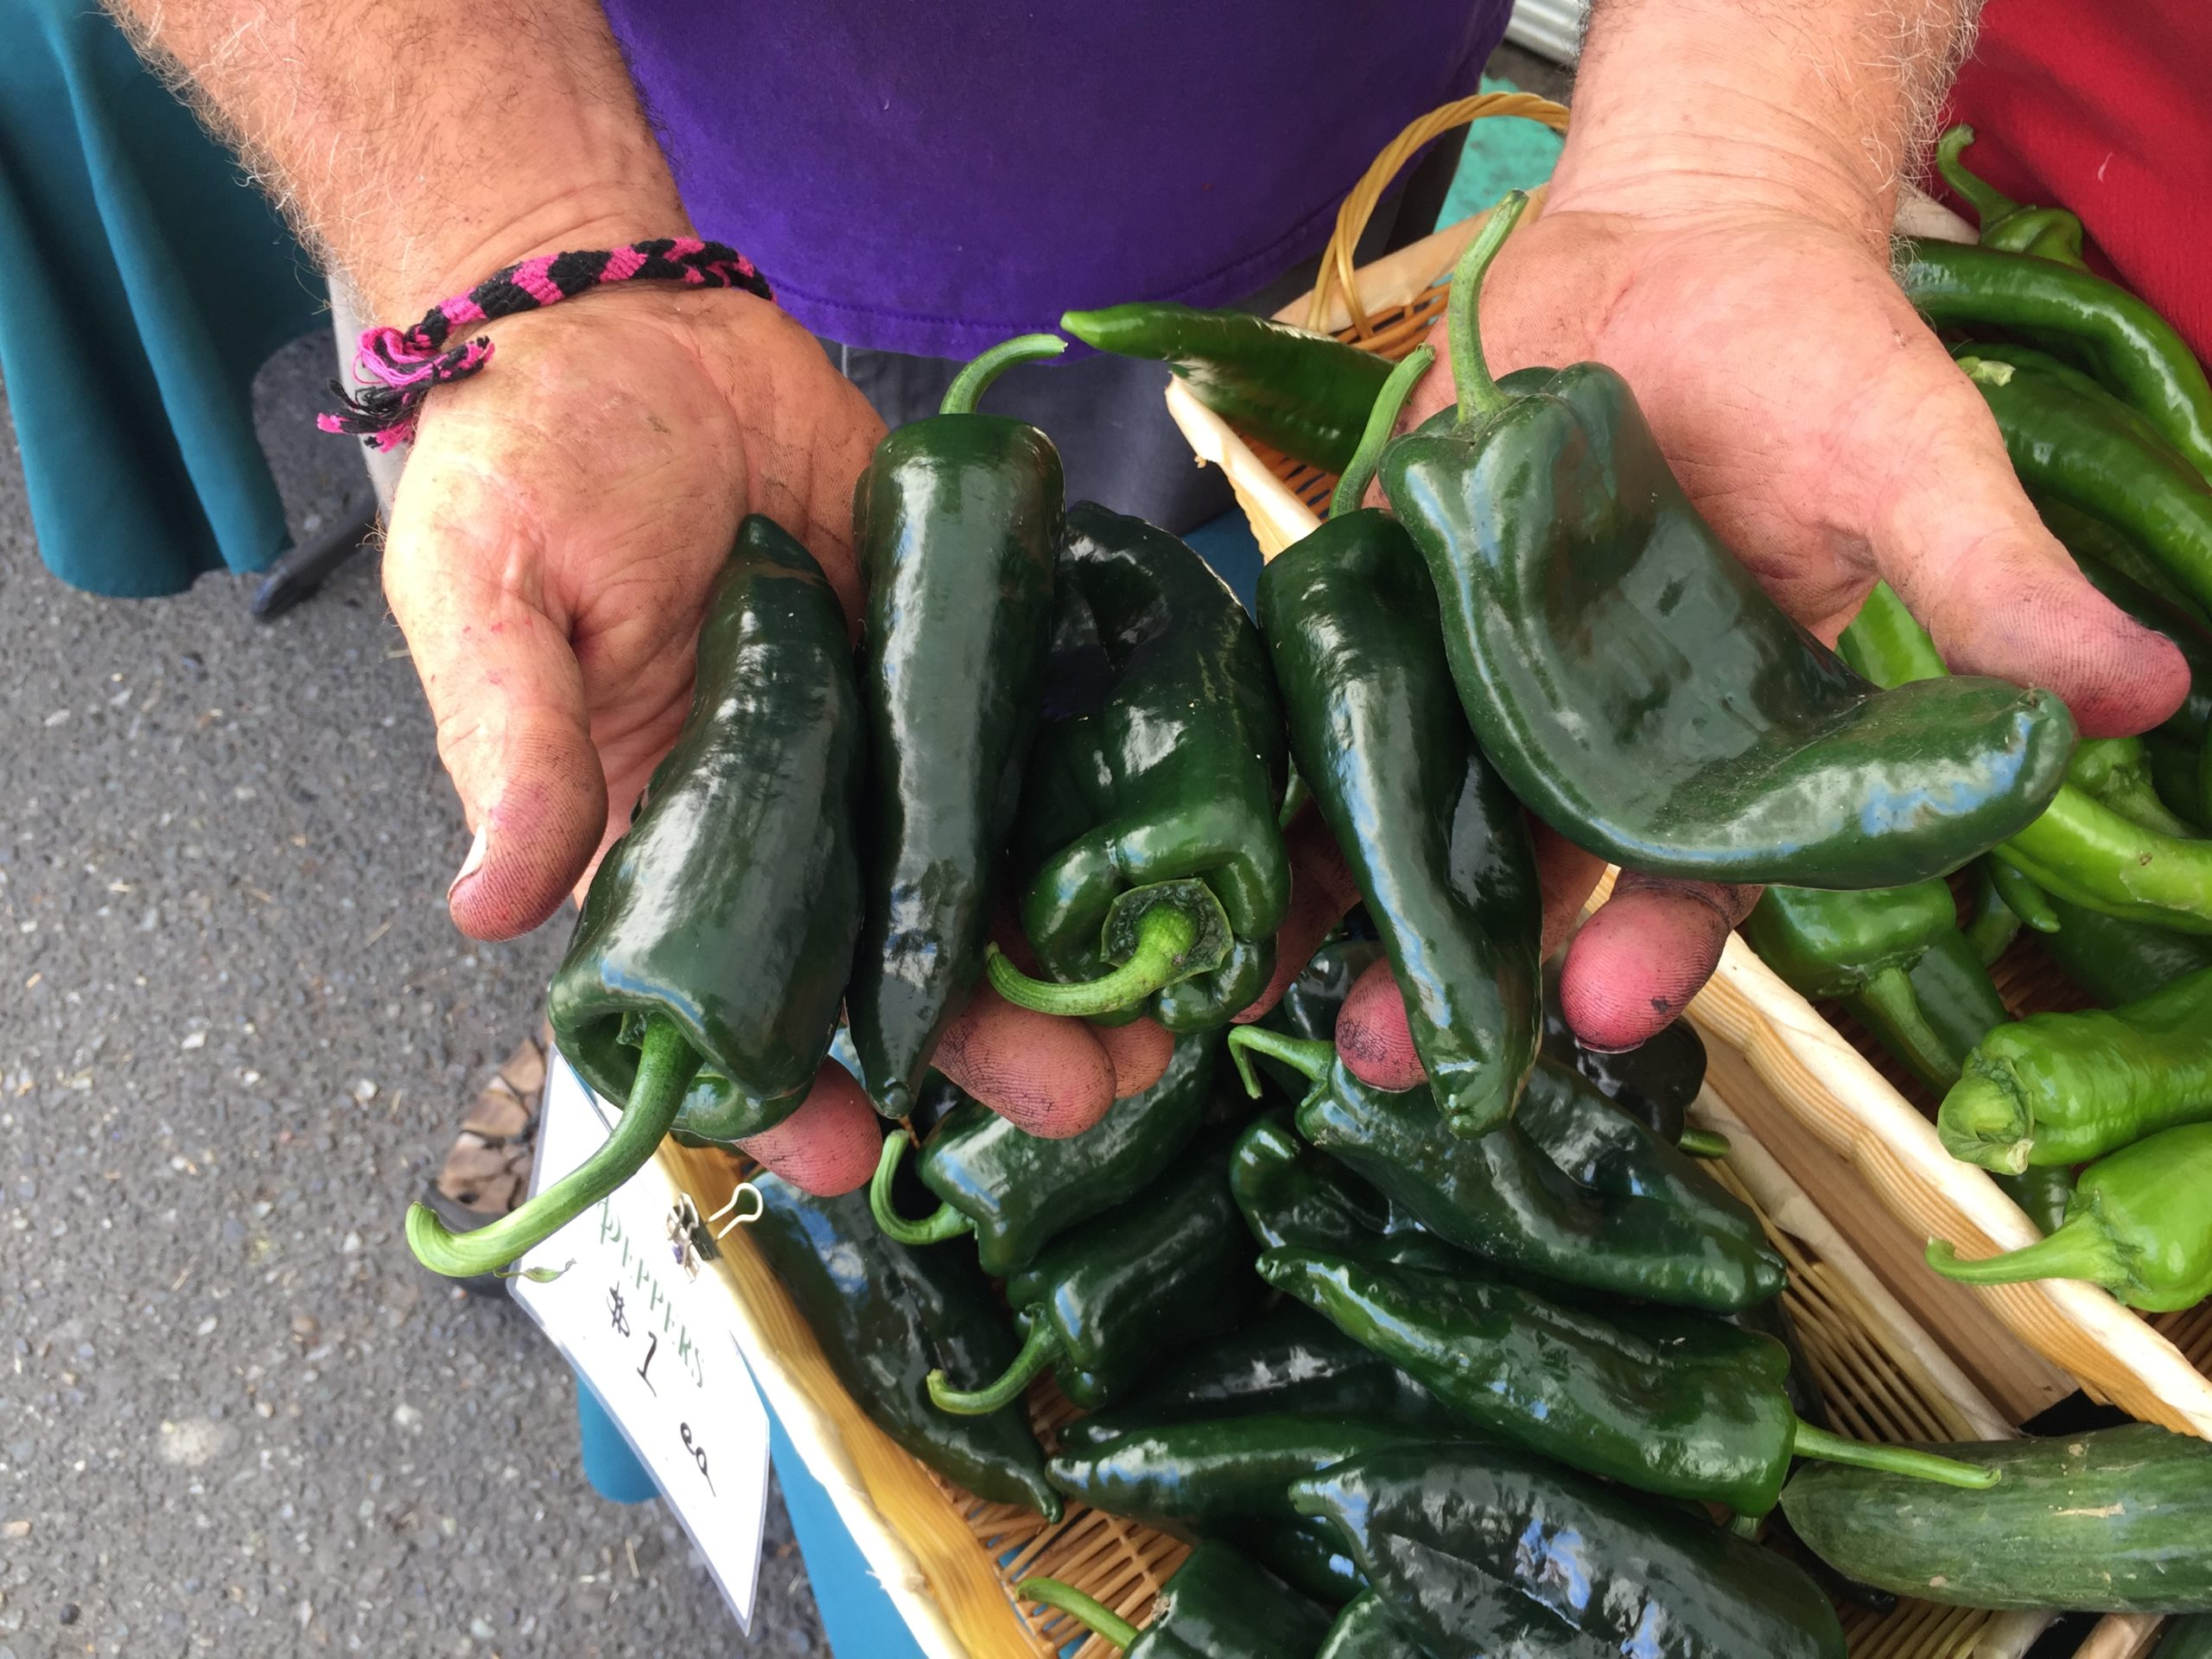 A close-up of hands full of dark green fresh peppers